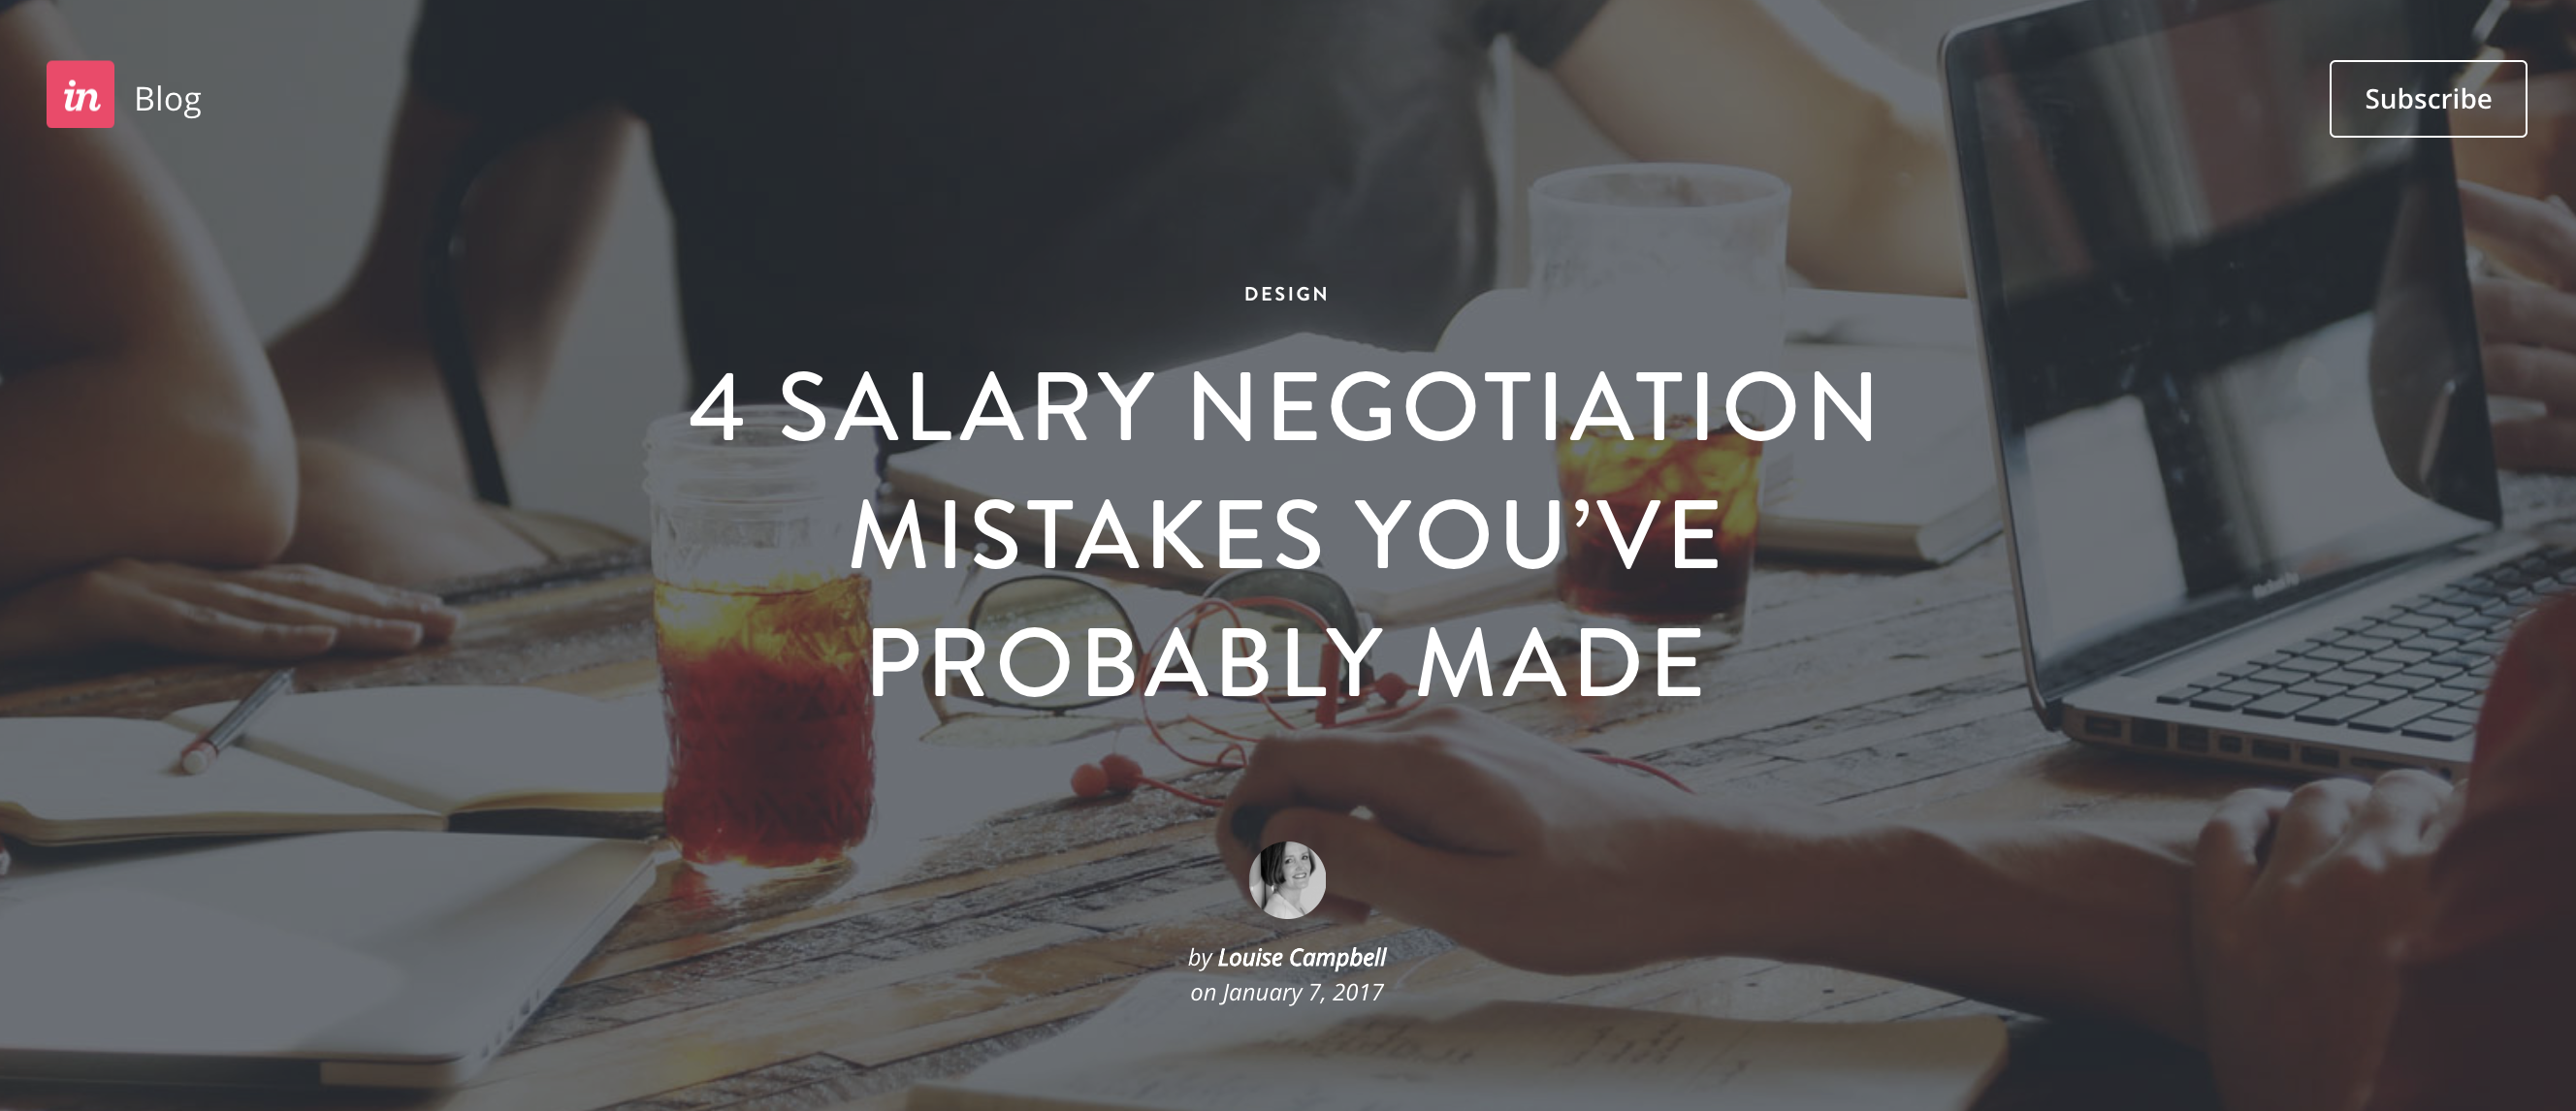 4 Salary Negotiation Mistakes You've Probably Made